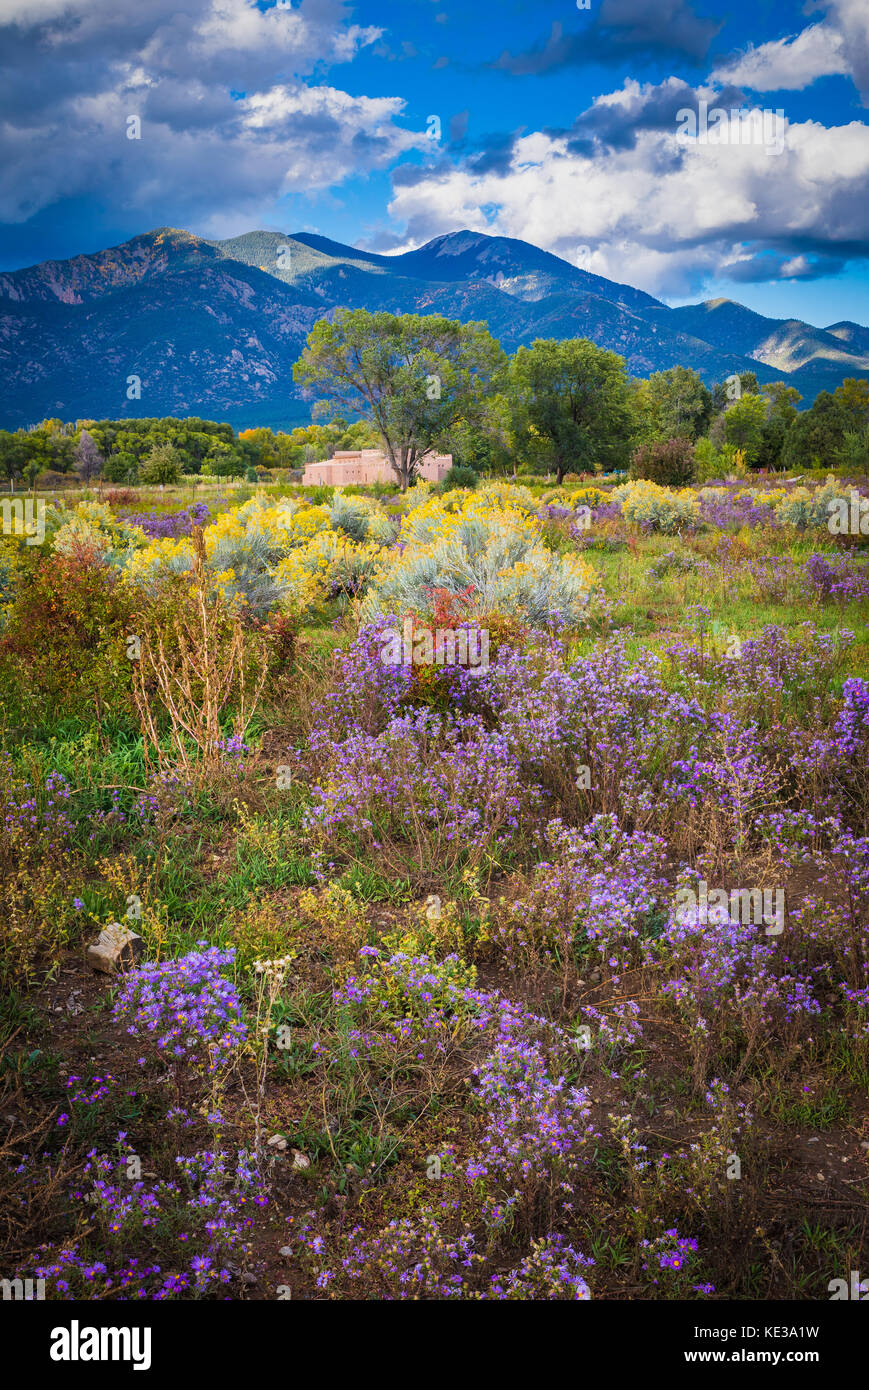 Wildflowers and Pueblo Peak in Taos, New Mexico - Stock Image